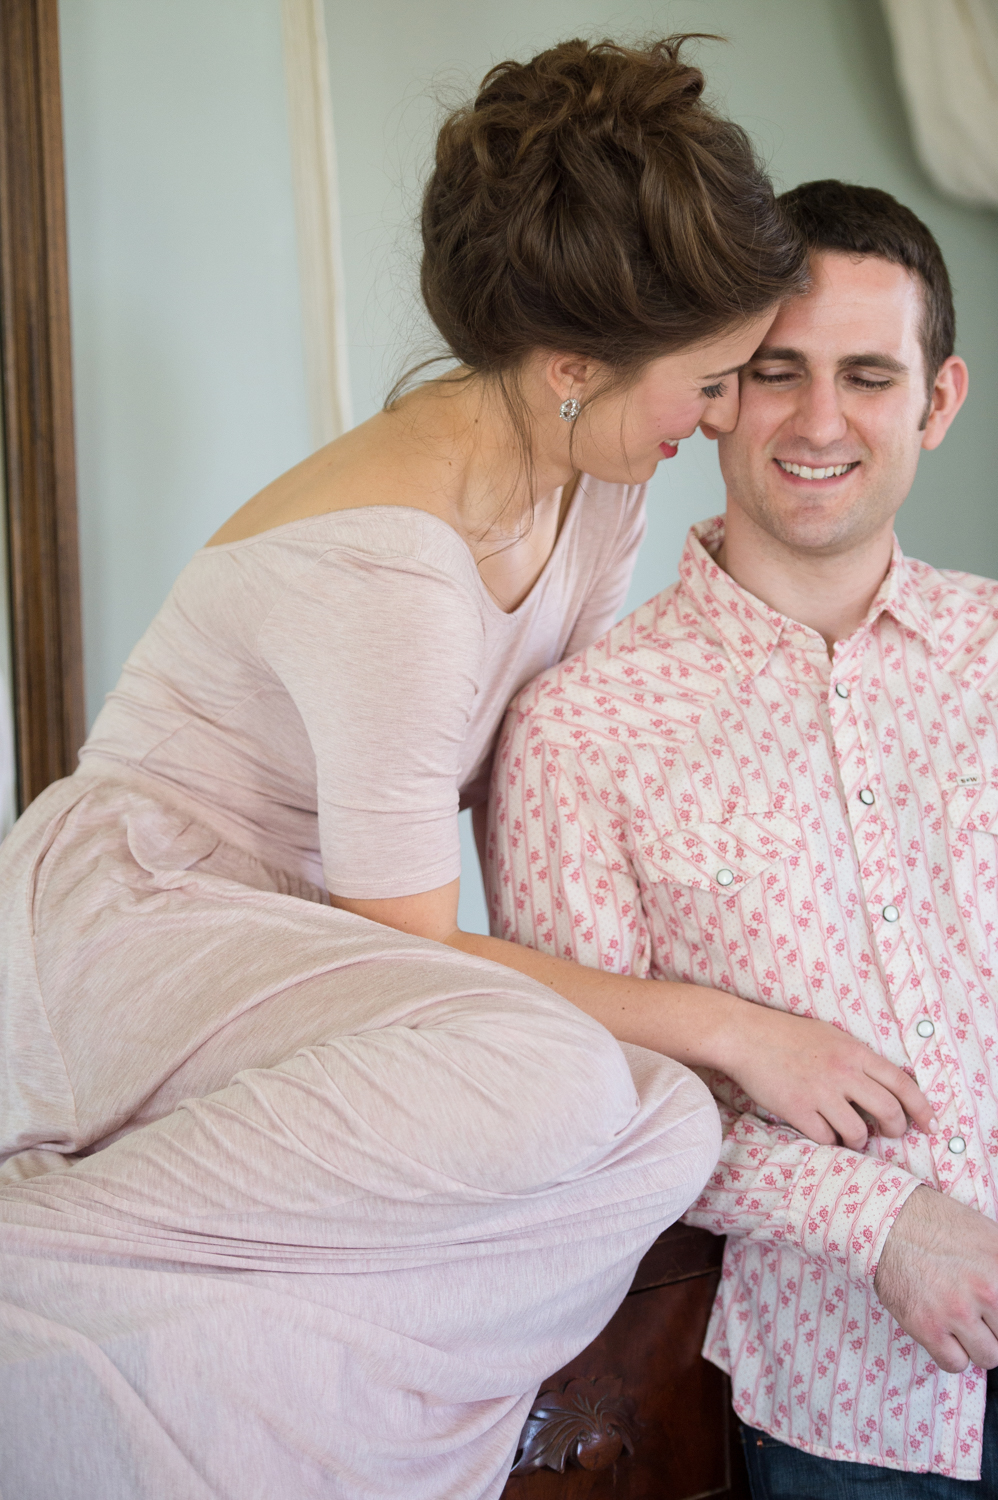 BARR_MANSION_ENGAGEMENT_SHOOT_BY_MATTHEW_MOORE_PHOTOGRAPHY_00064.jpg